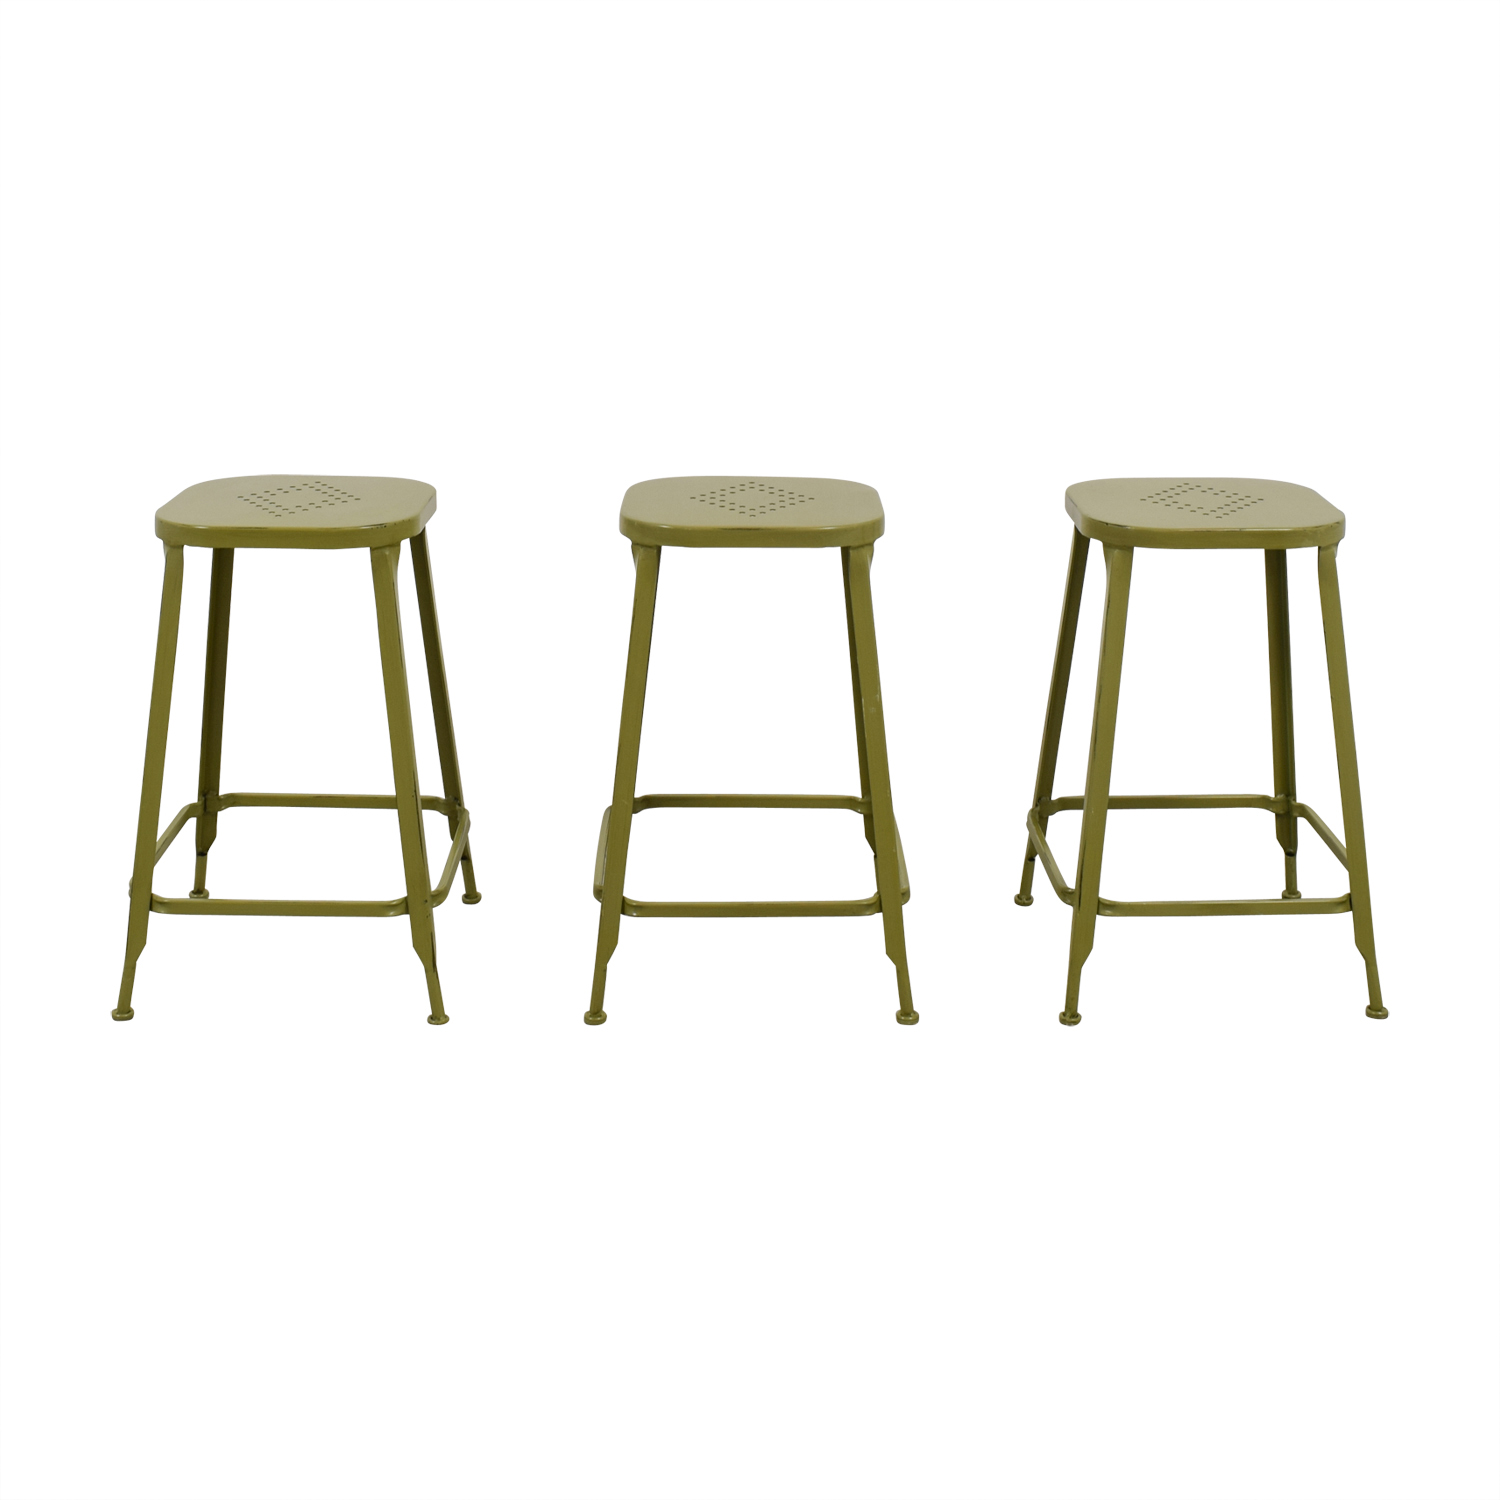 Pier 1 Green Metal Weathered Backless Stools for sale